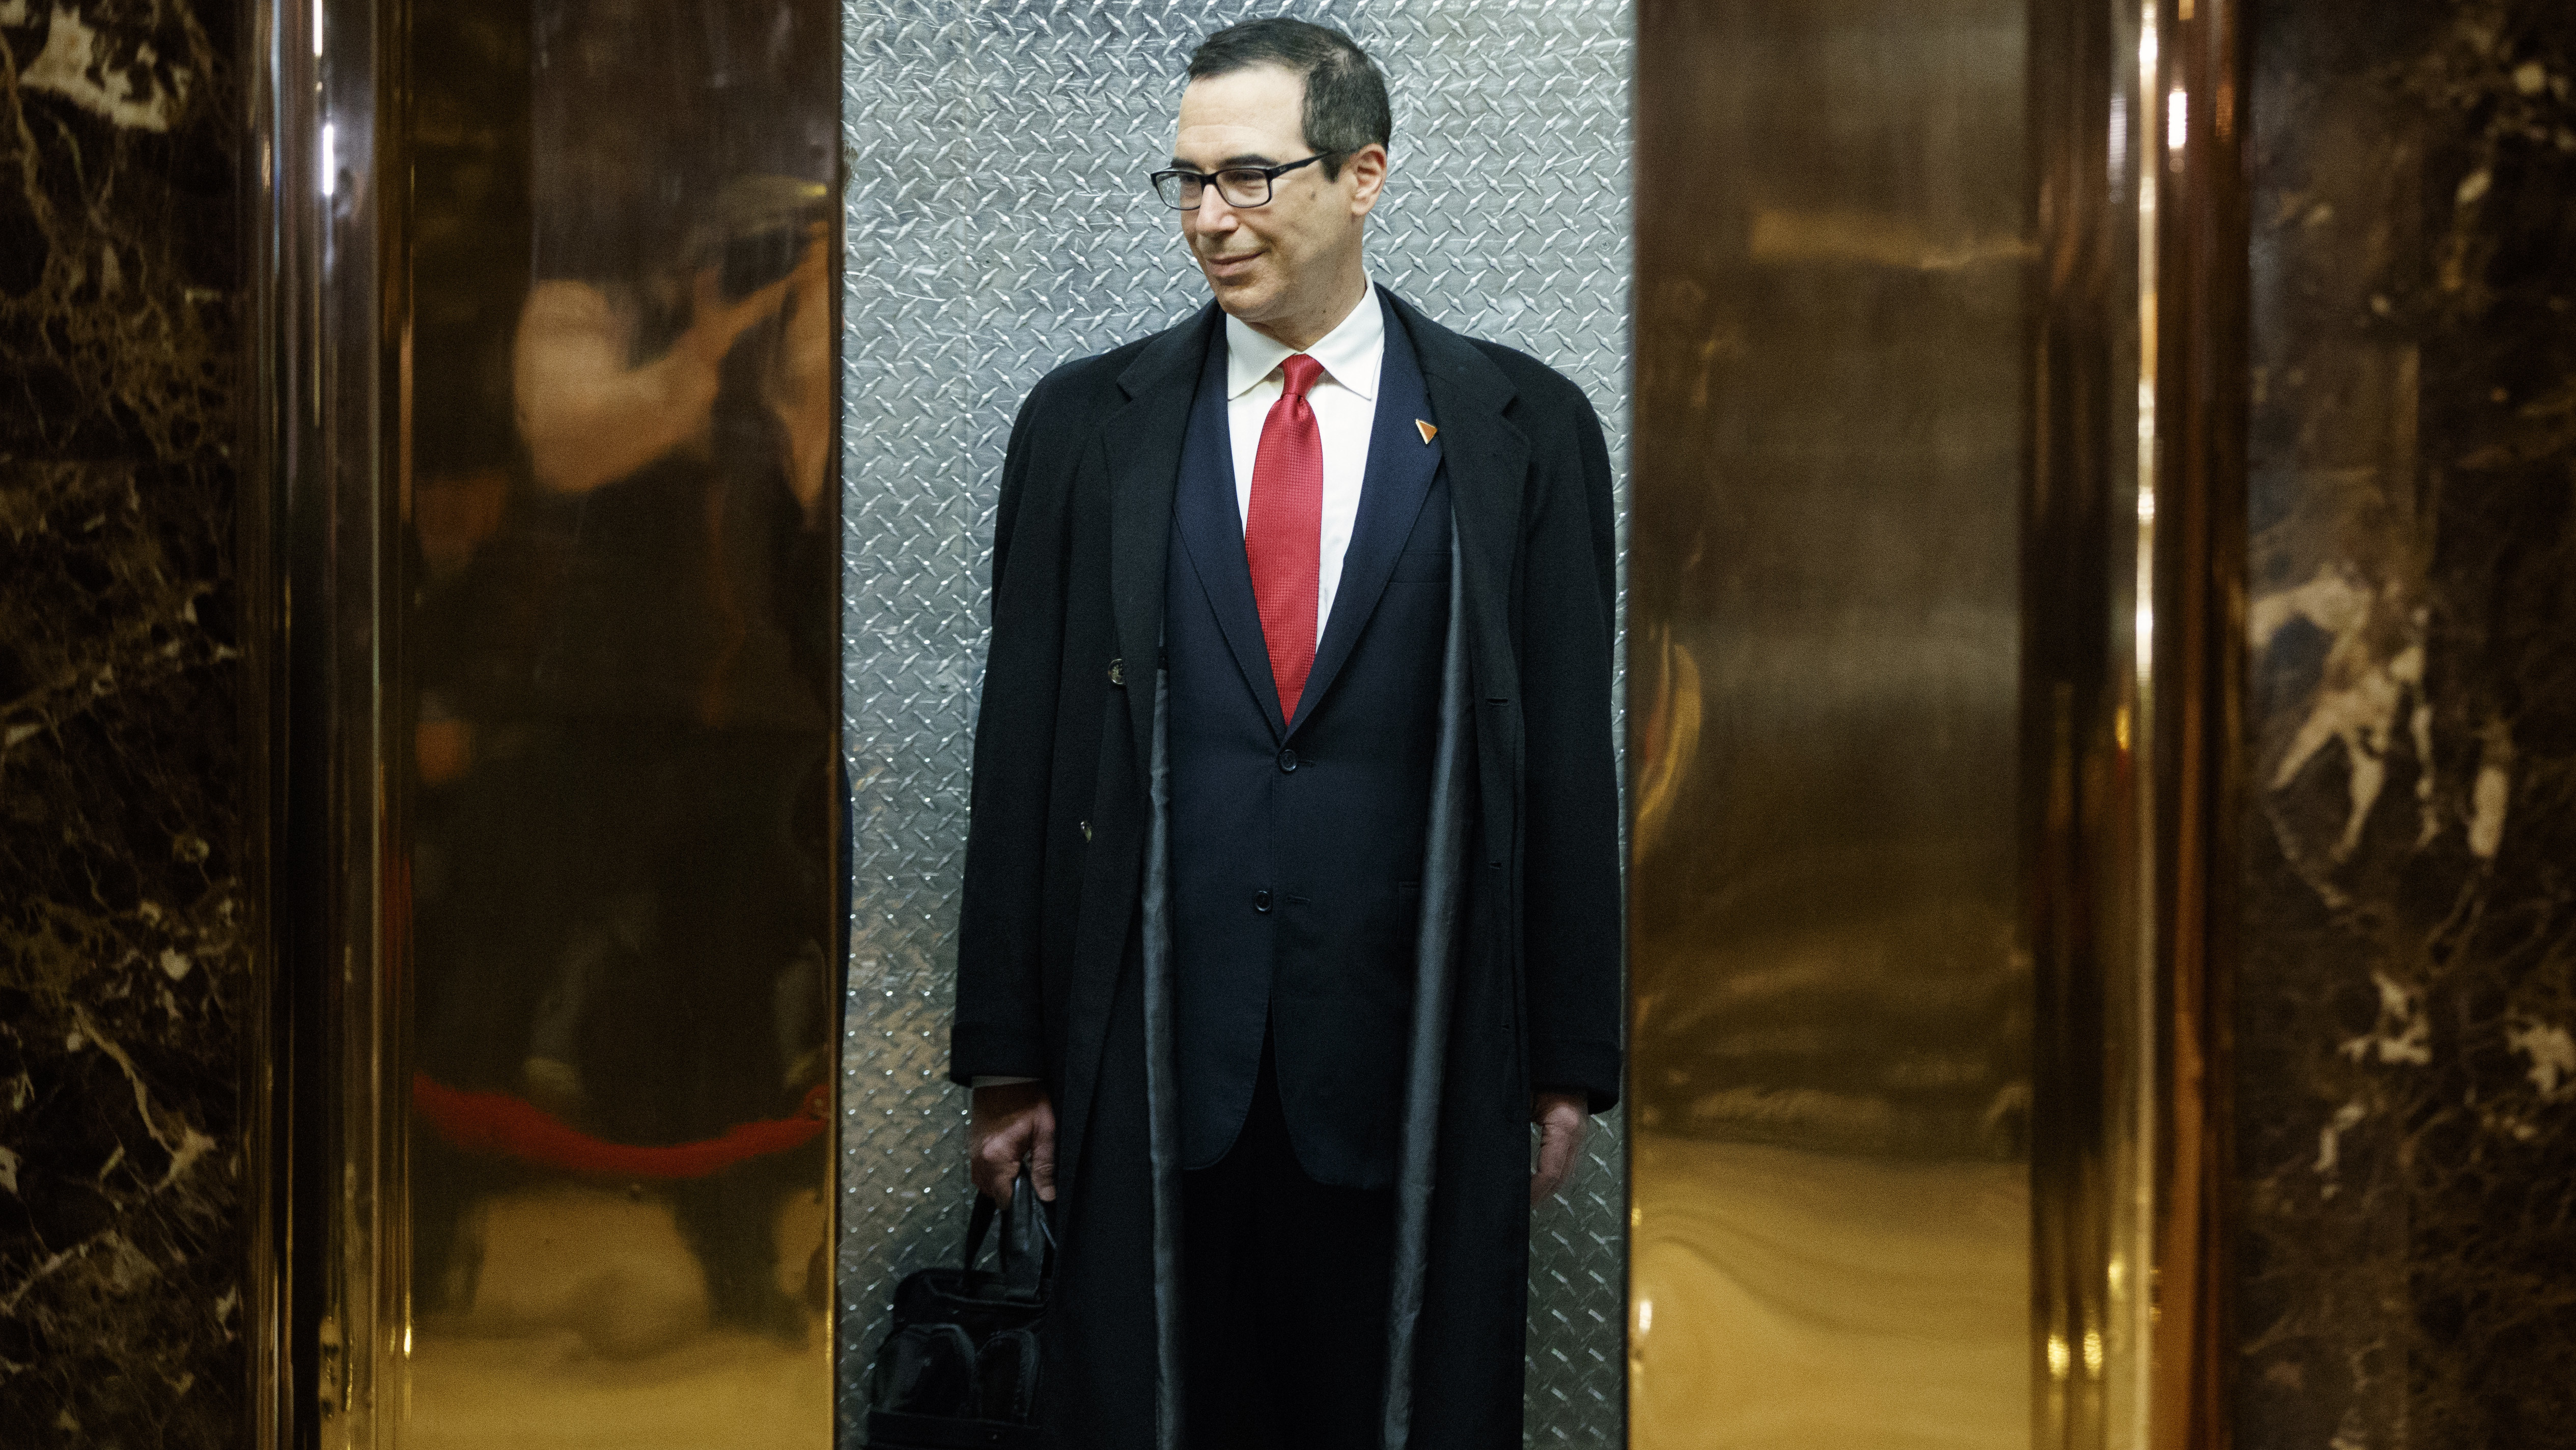 Steven Mnuchin, President-elect Donald Trump's nominee for Treasury Secretary, gets on an elevator after speaking with reporters in the lobby of Trump Tower, Wednesday, Nov. 30, 2016, in New York. (AP Photo/Evan Vucci)